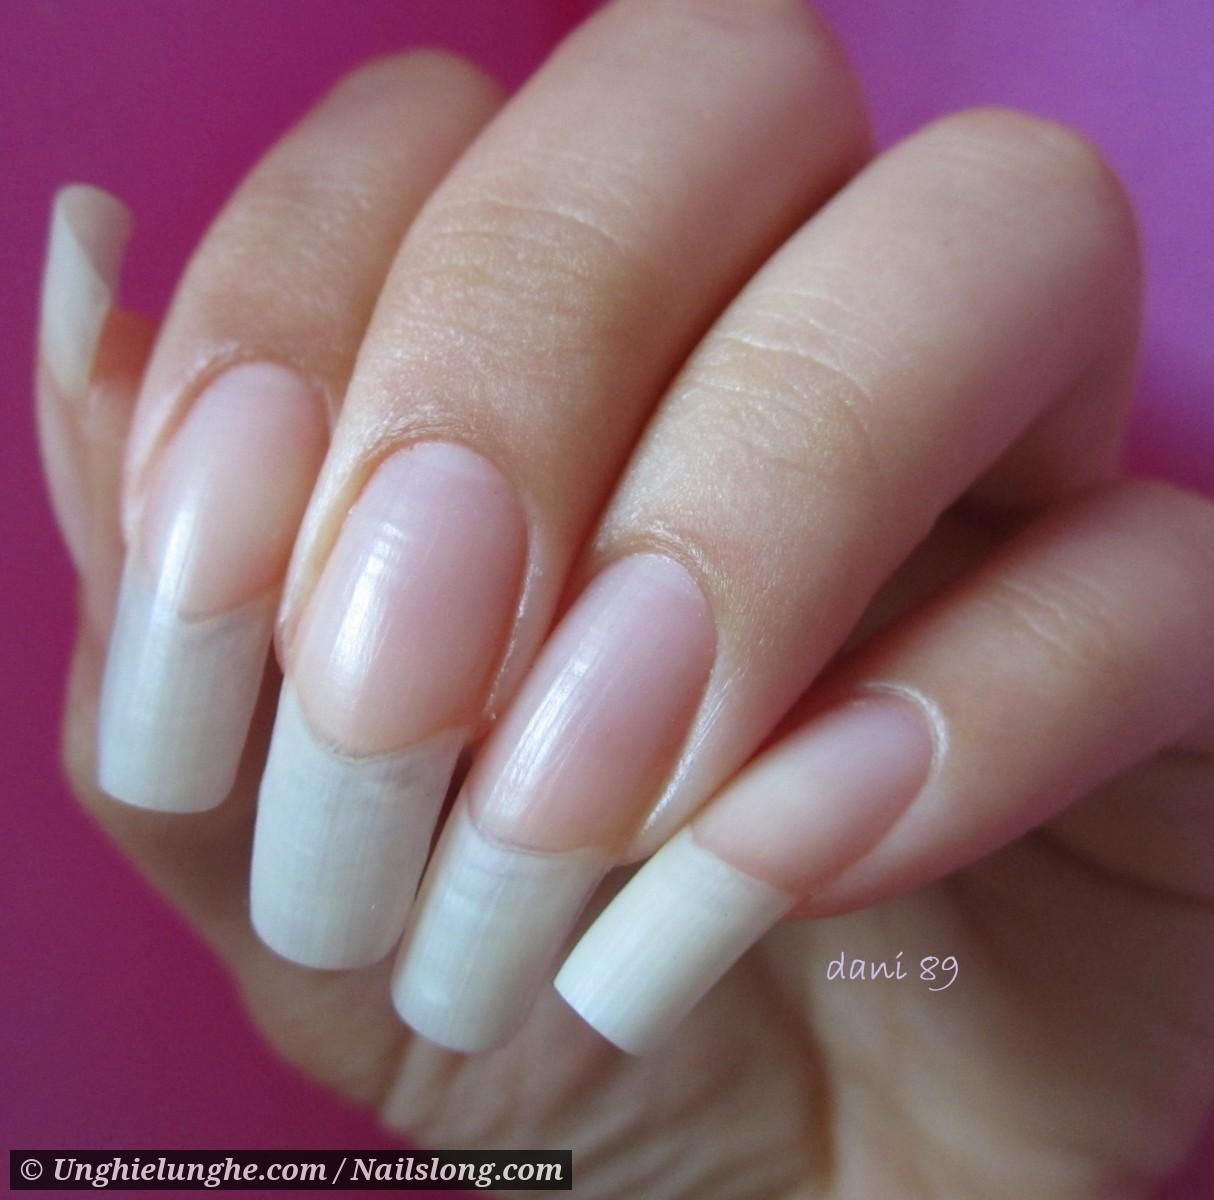 dani 89 - Nailslong.com | Nails! - Translucent / Clear / Natural ...